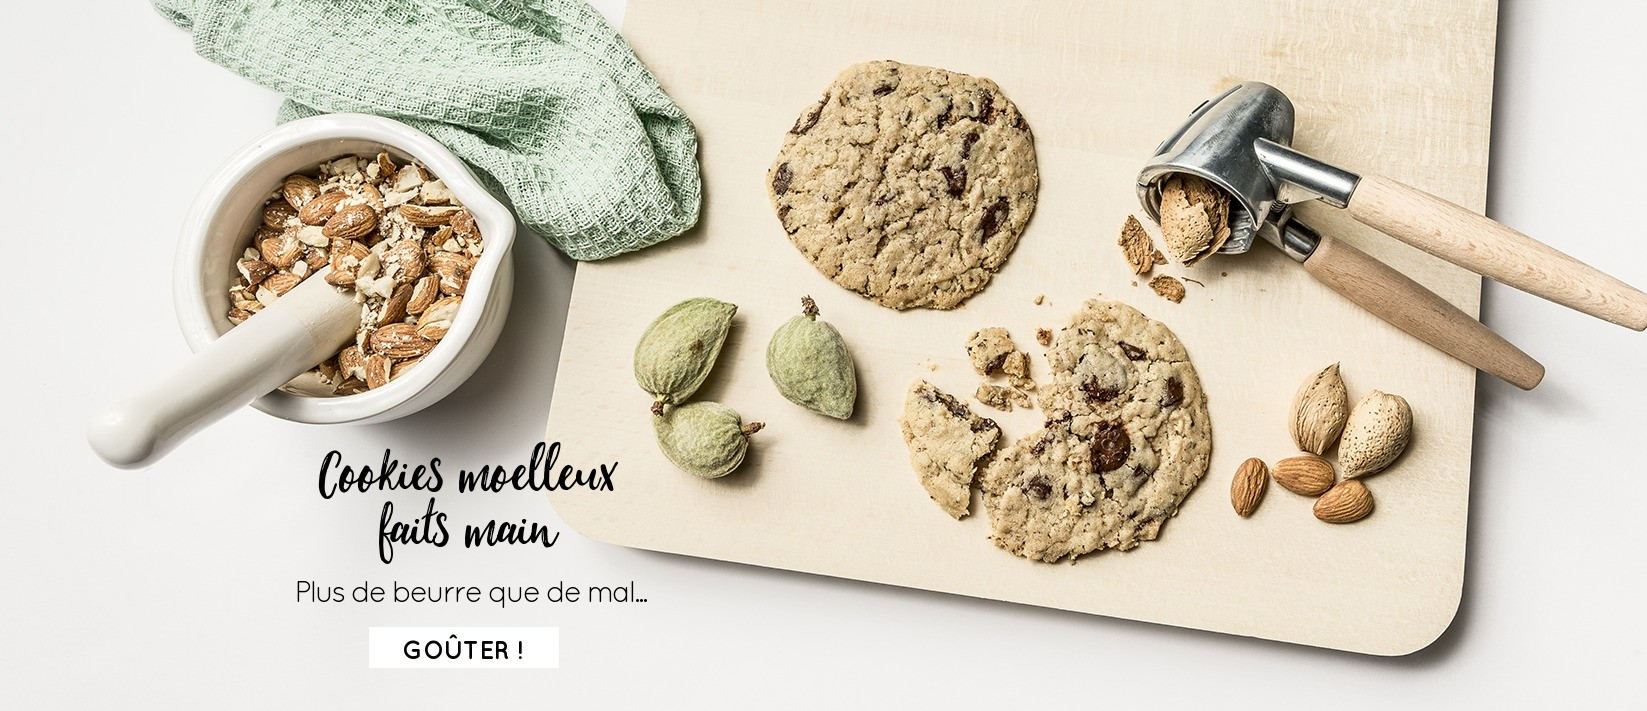 Cookies moelleux faits main